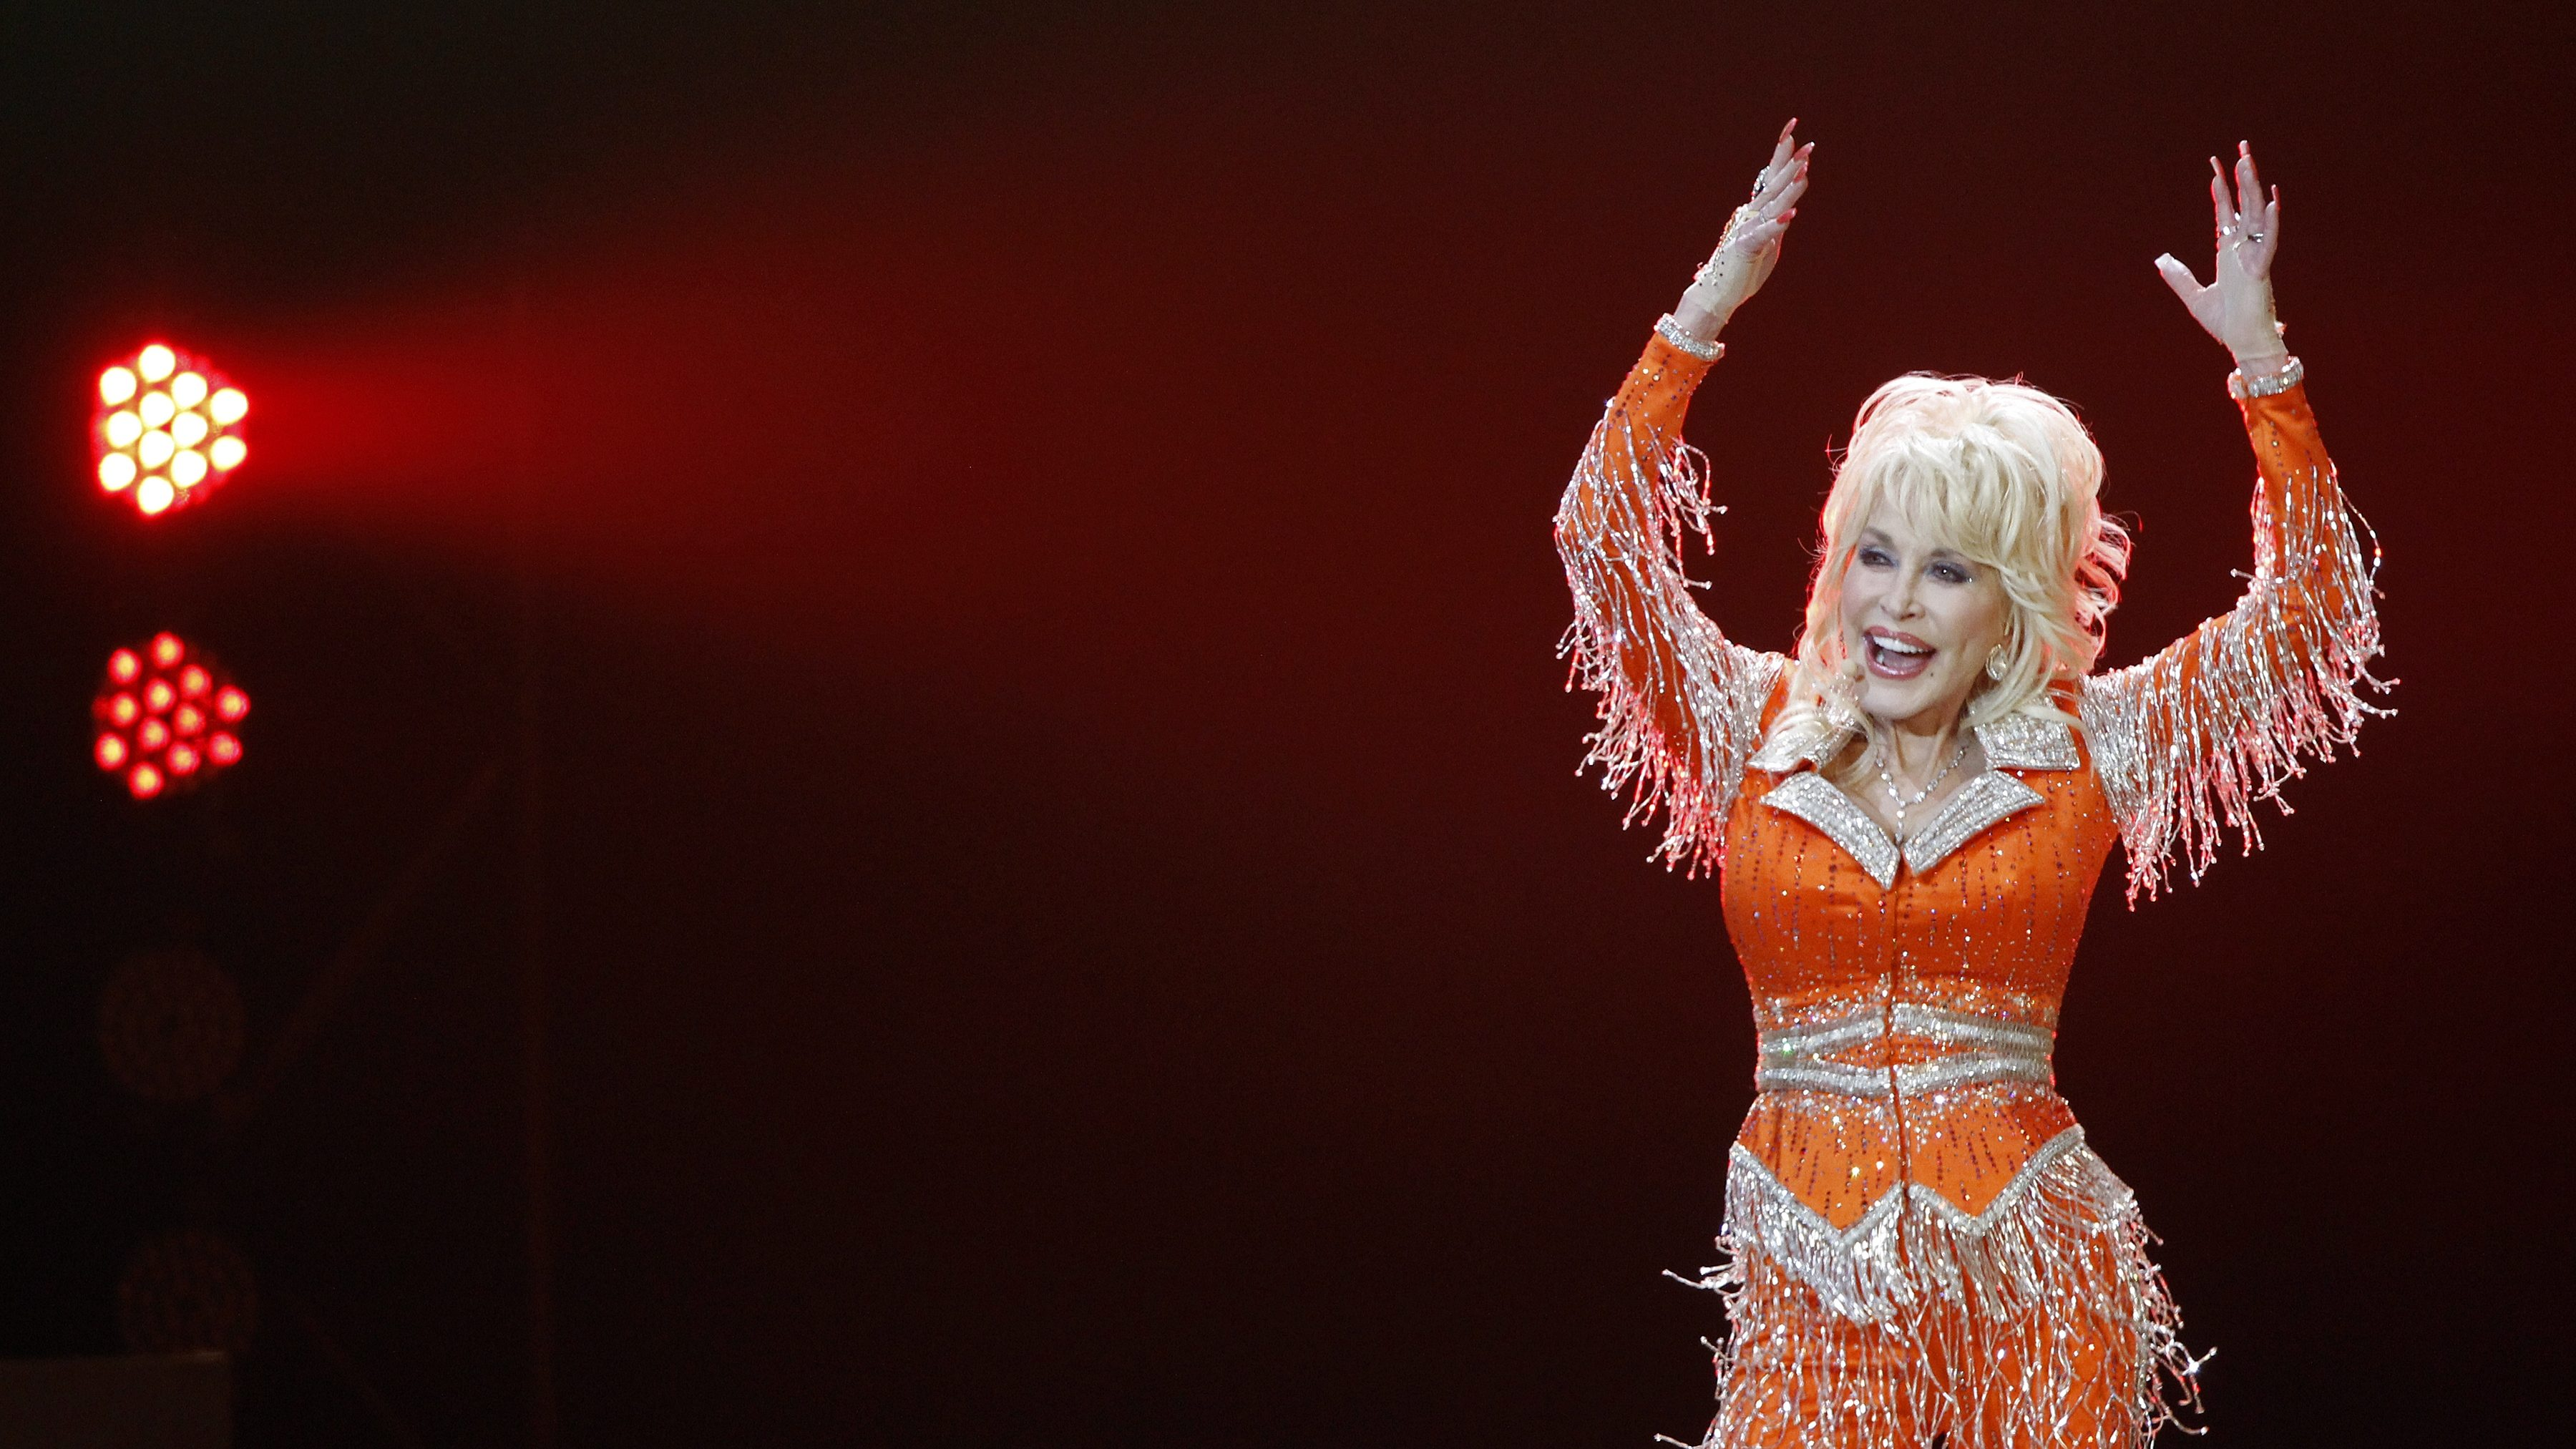 Photo of Dolly Parton in a brightly colored outfit with fringes. She's waving her hands up at a concert in 2014.